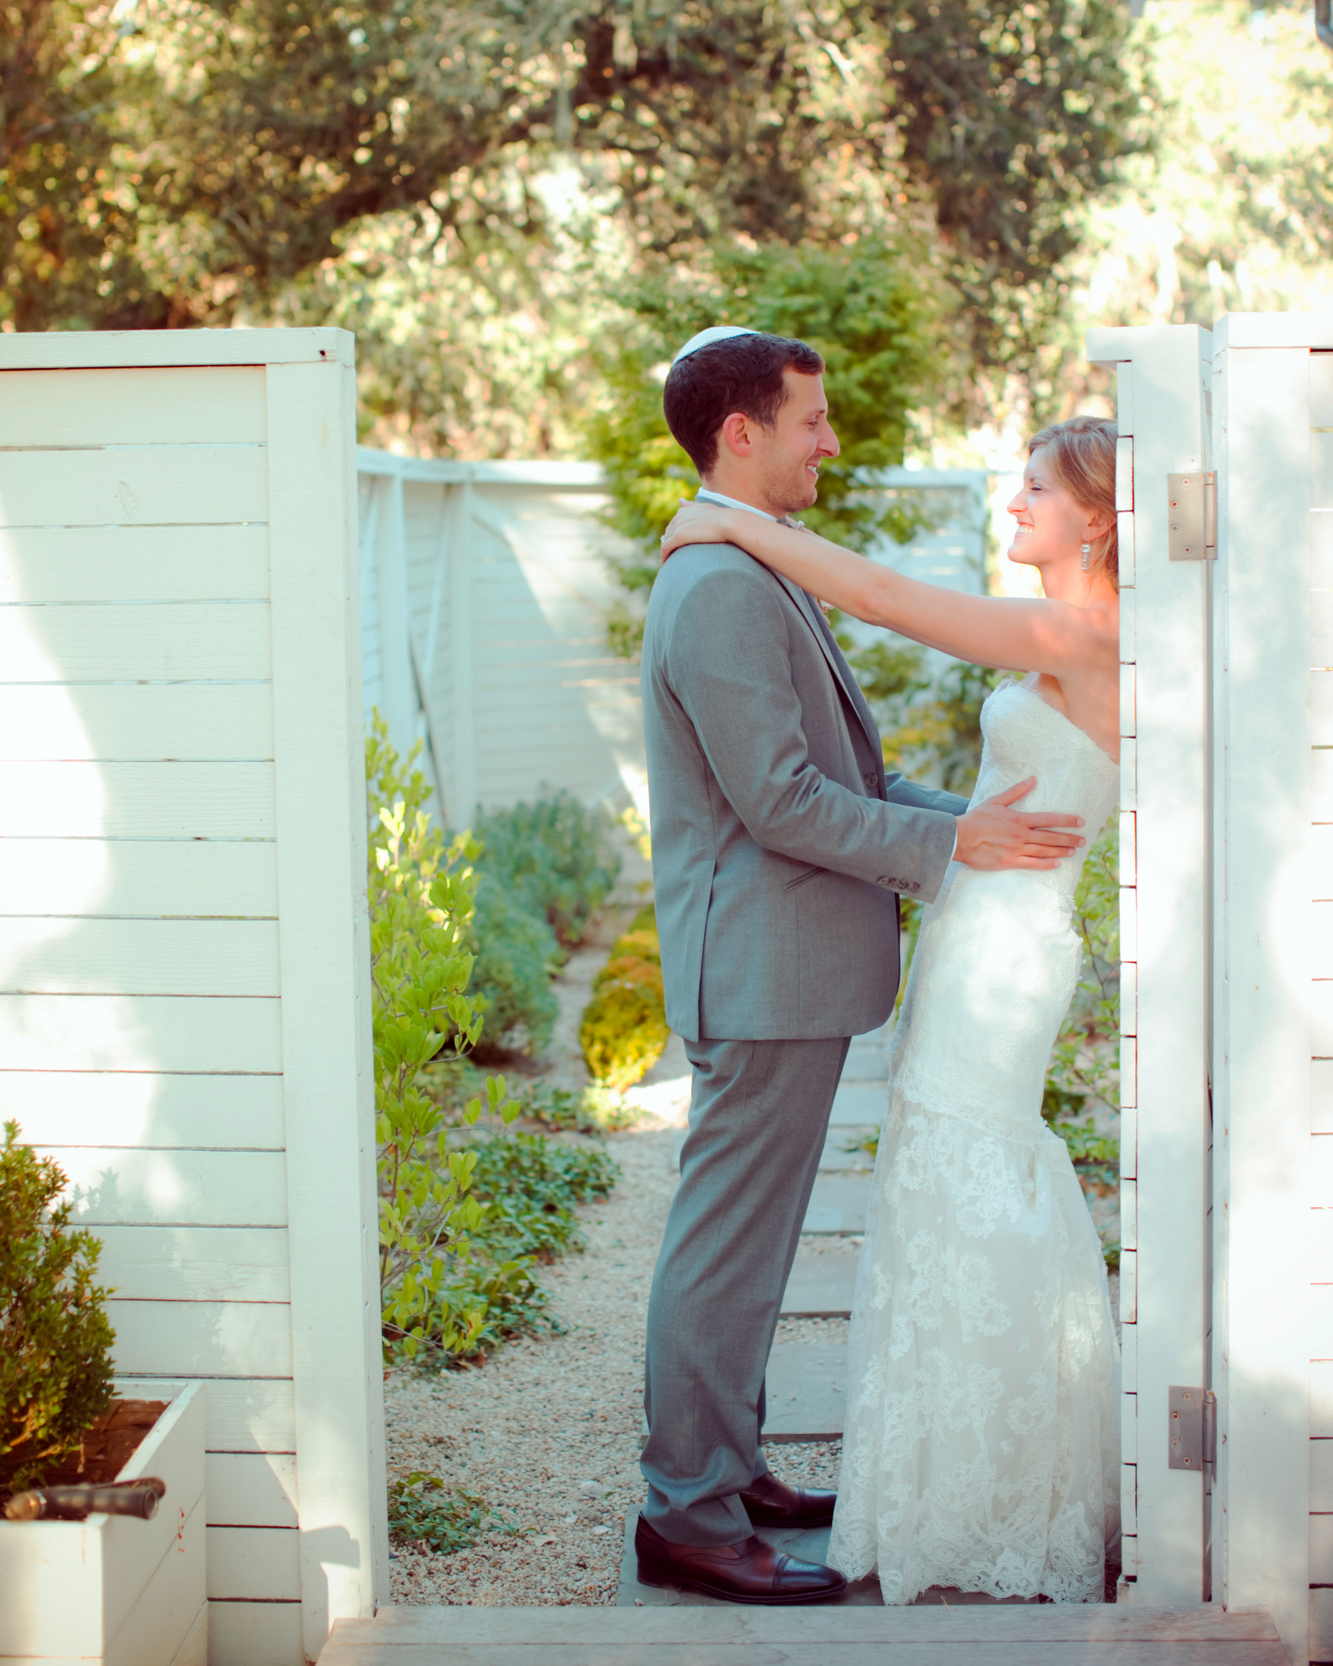 Maddie Rice Wedding.A Teal Blue And Tan Rustic Destination Wedding In California